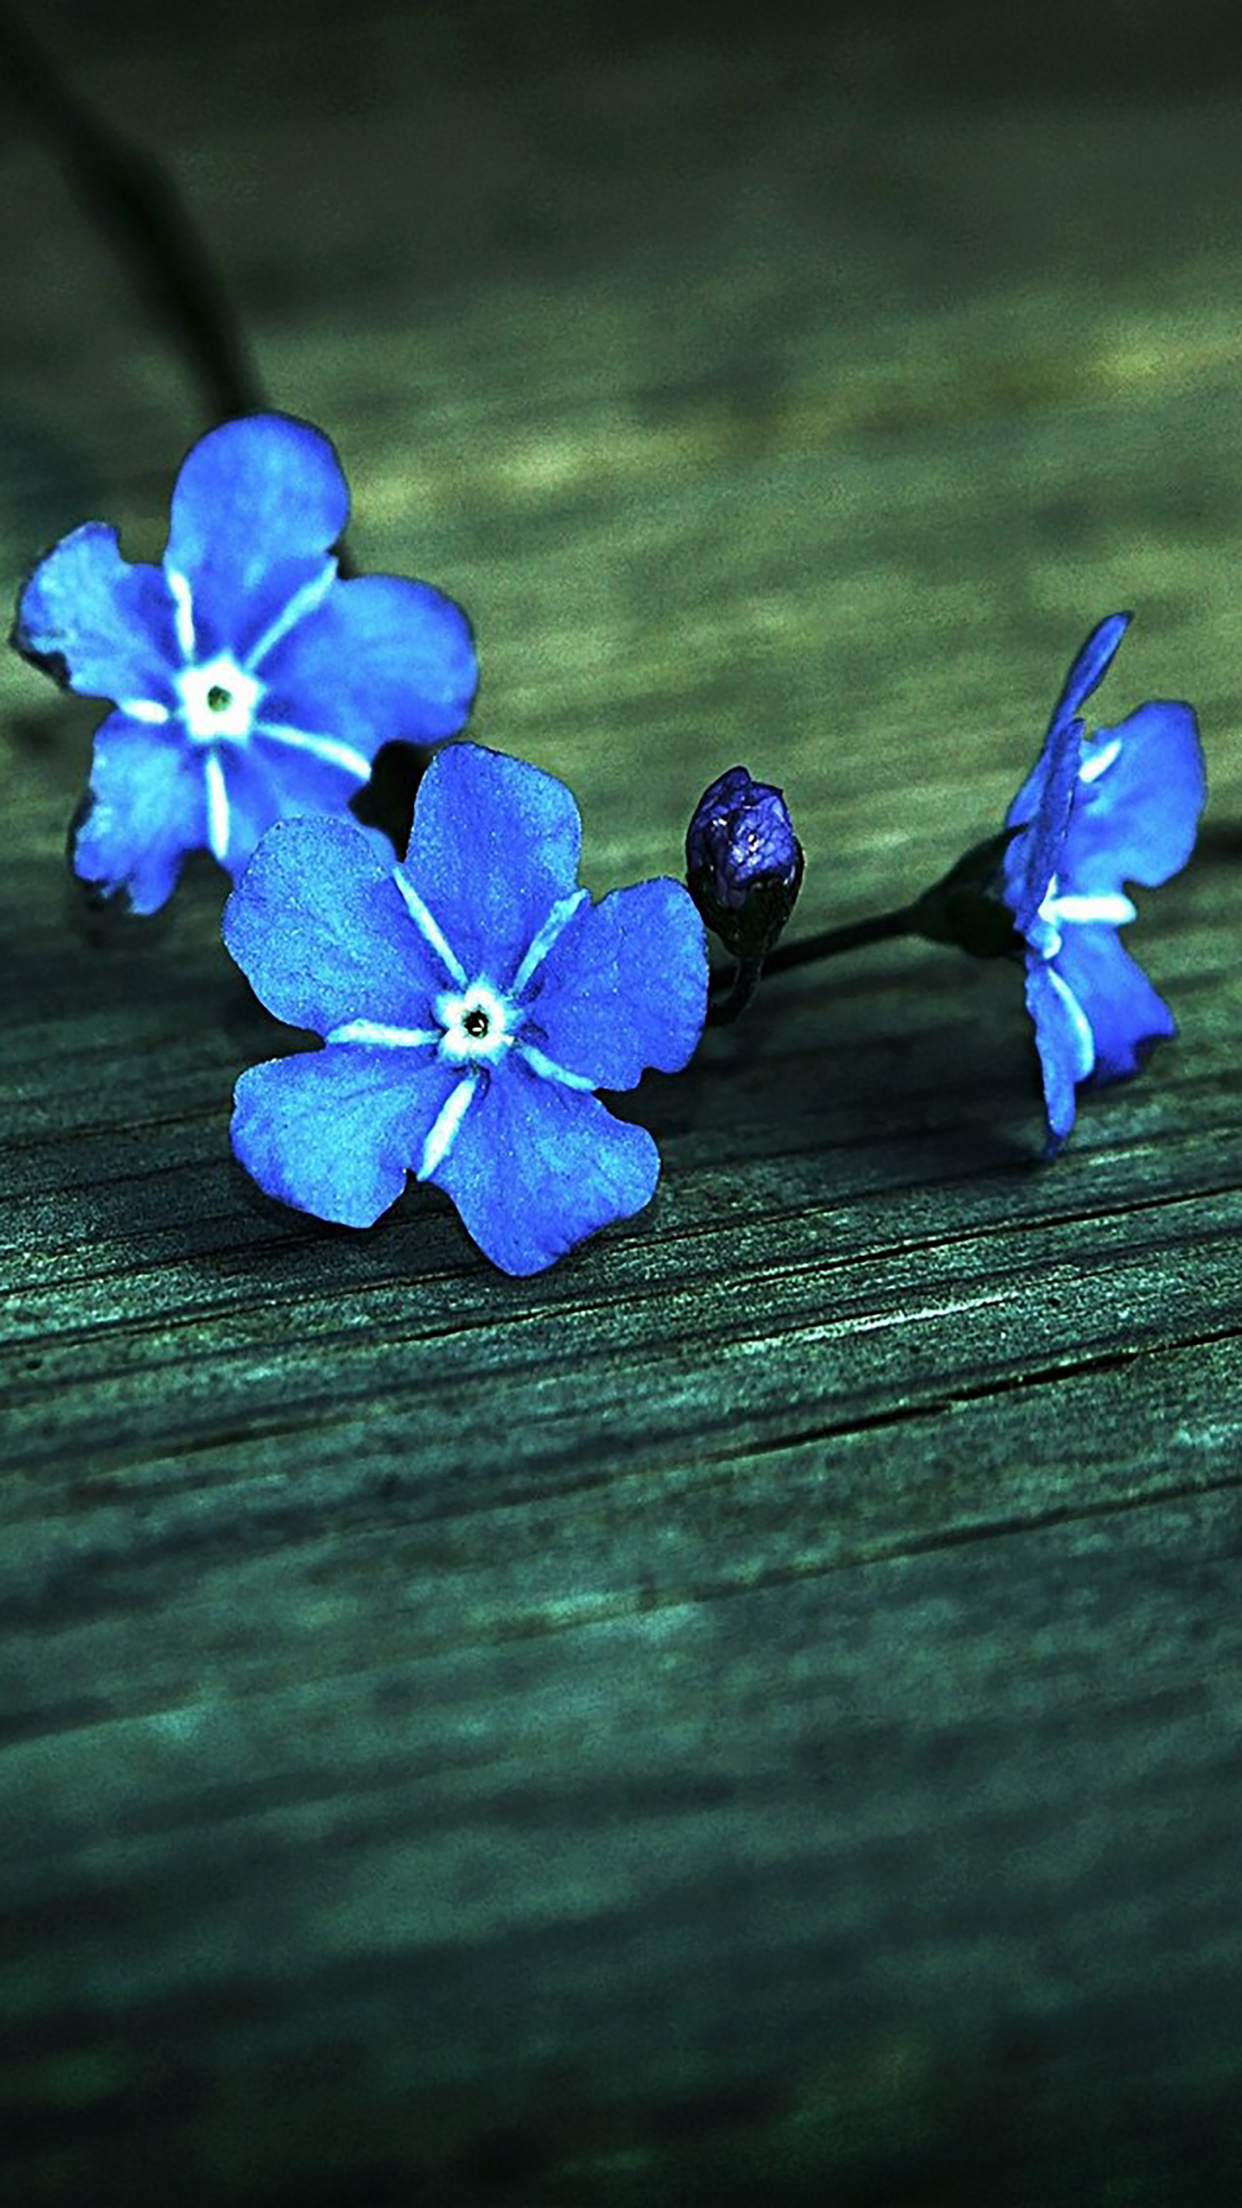 Flowers Blue 3Wallpapers iPhone Parallax 3Wallpapers : notre sélection de fonds décran du 22/07/2017